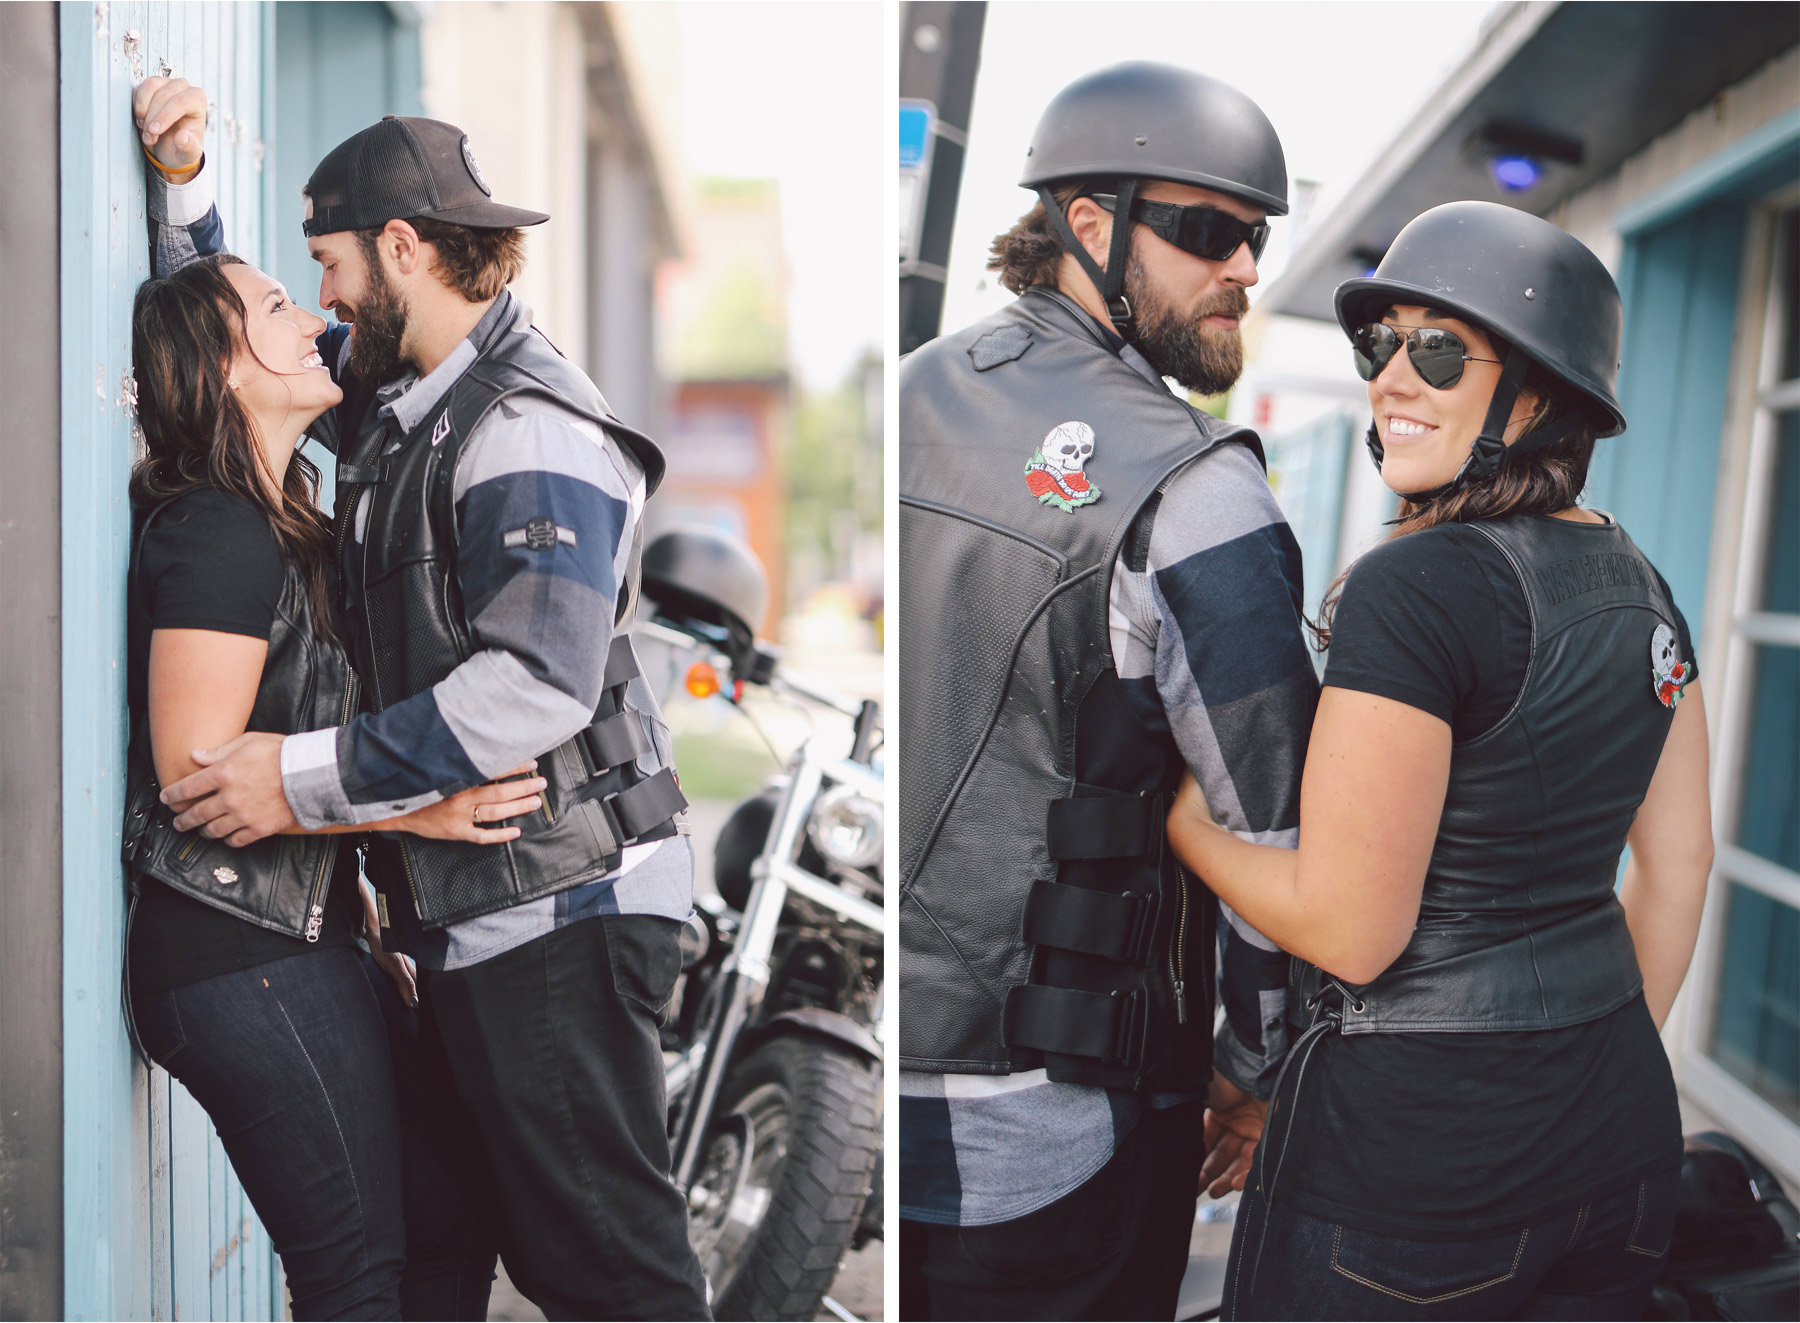 08-Calgary-Canada-Engagement-Photography-by-Vick-Photography-Bikers-Harley-Davidson-Lizz-and-Brady.jpg